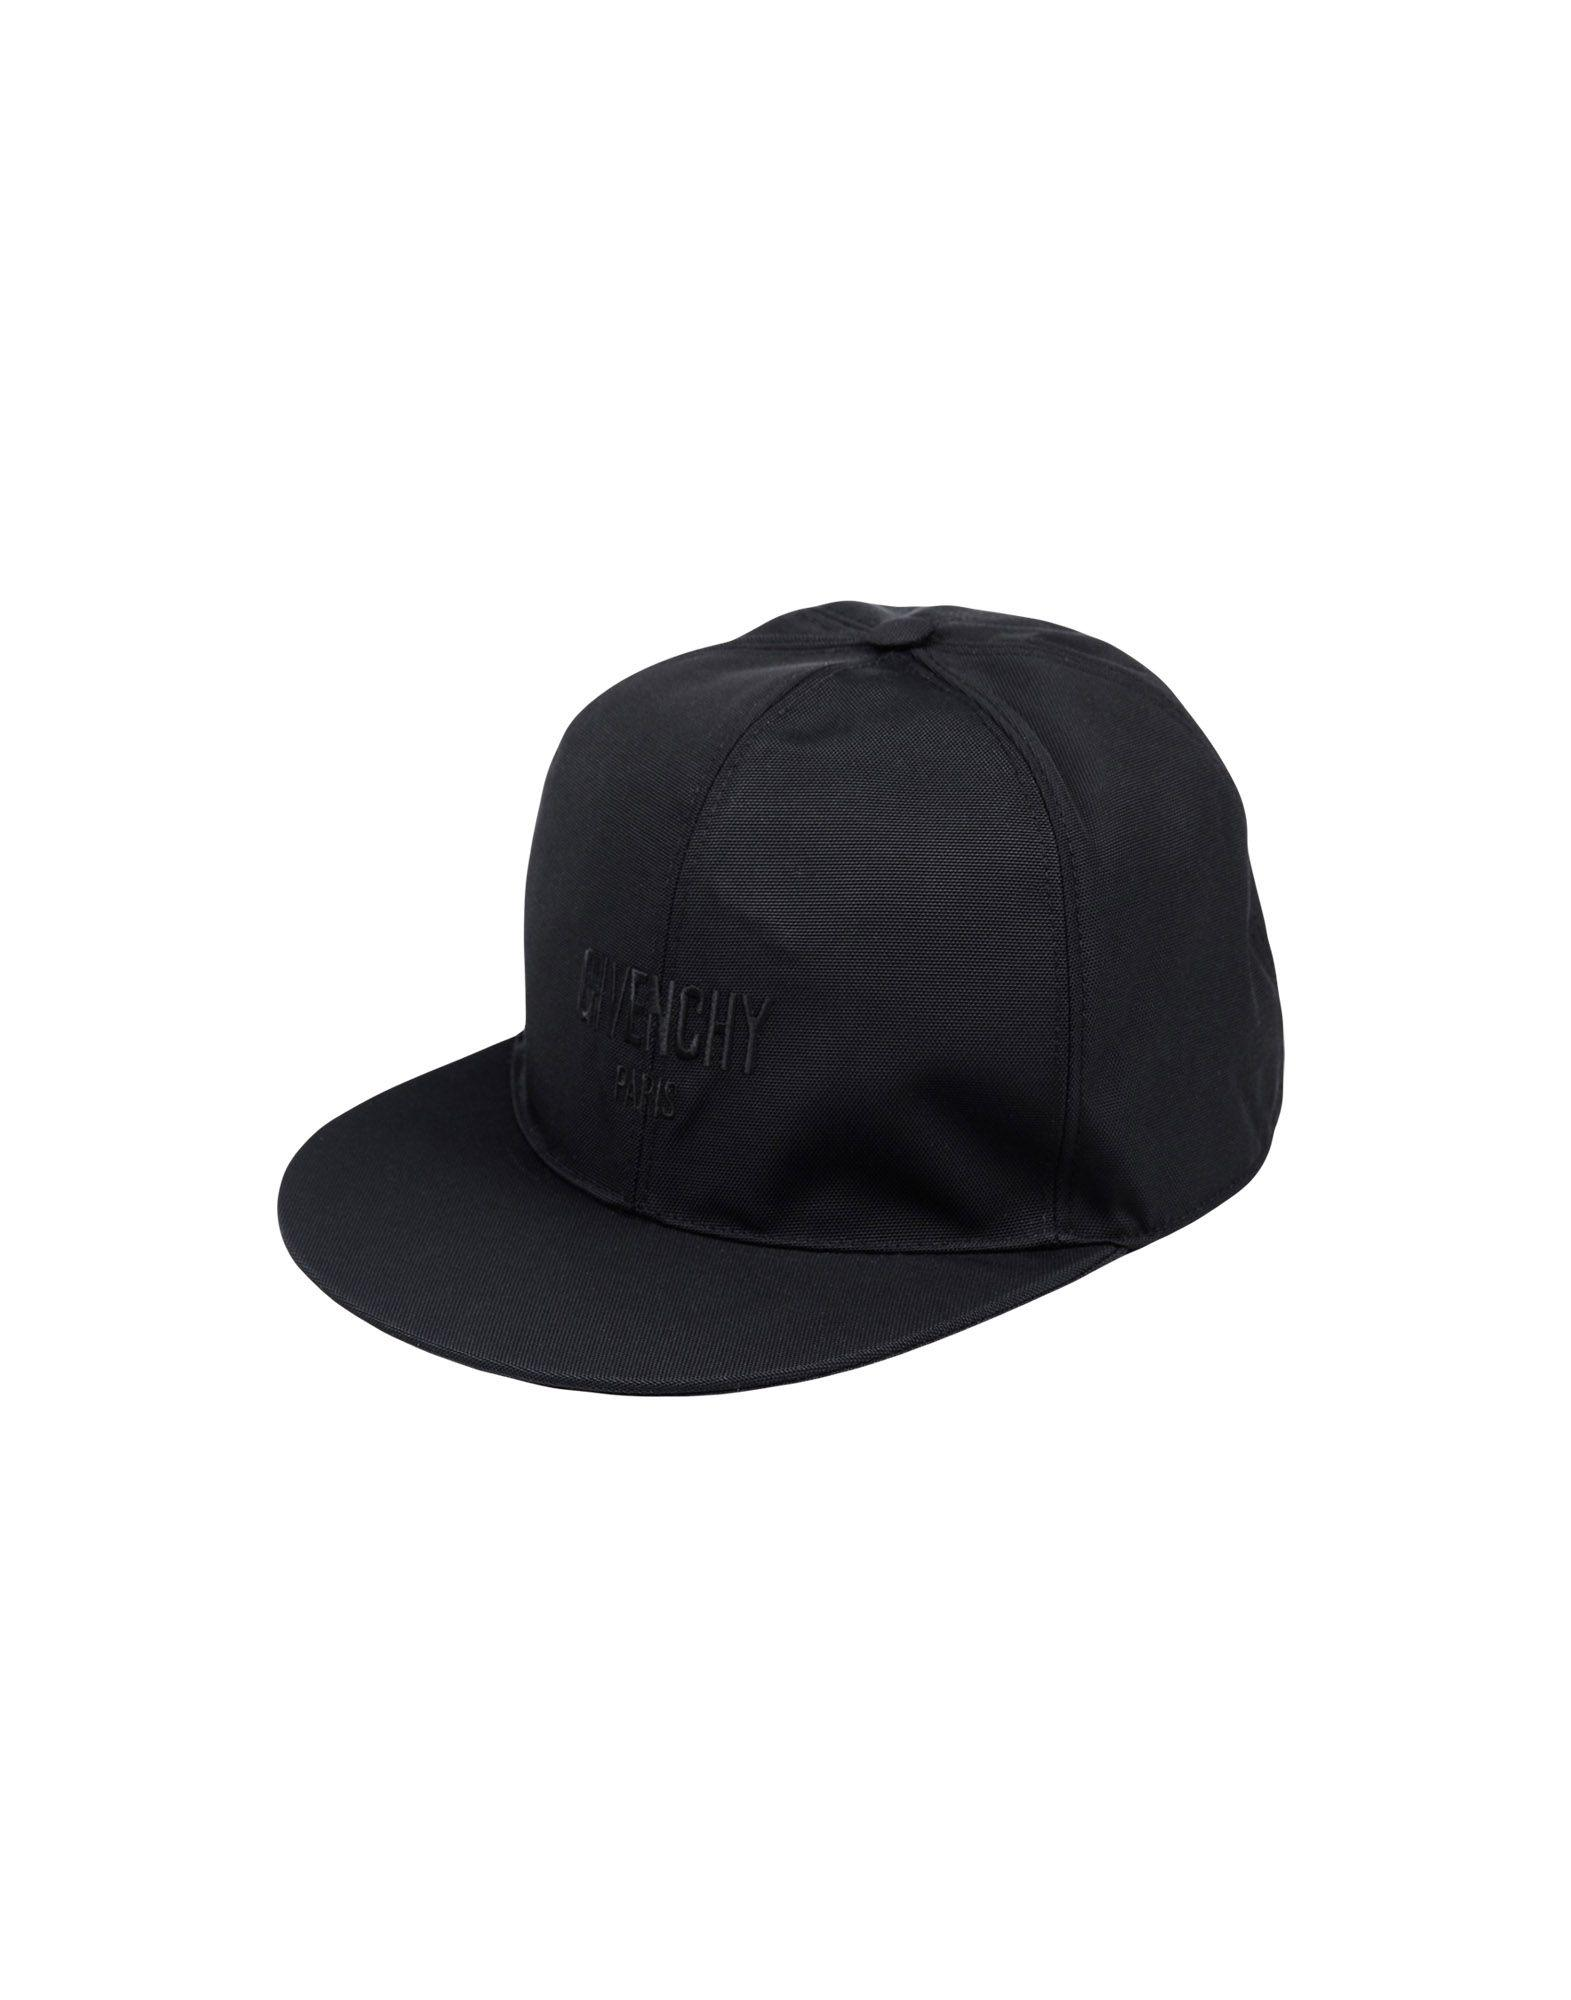 Lyst - Givenchy Hat in Black for Men 56e6534a774